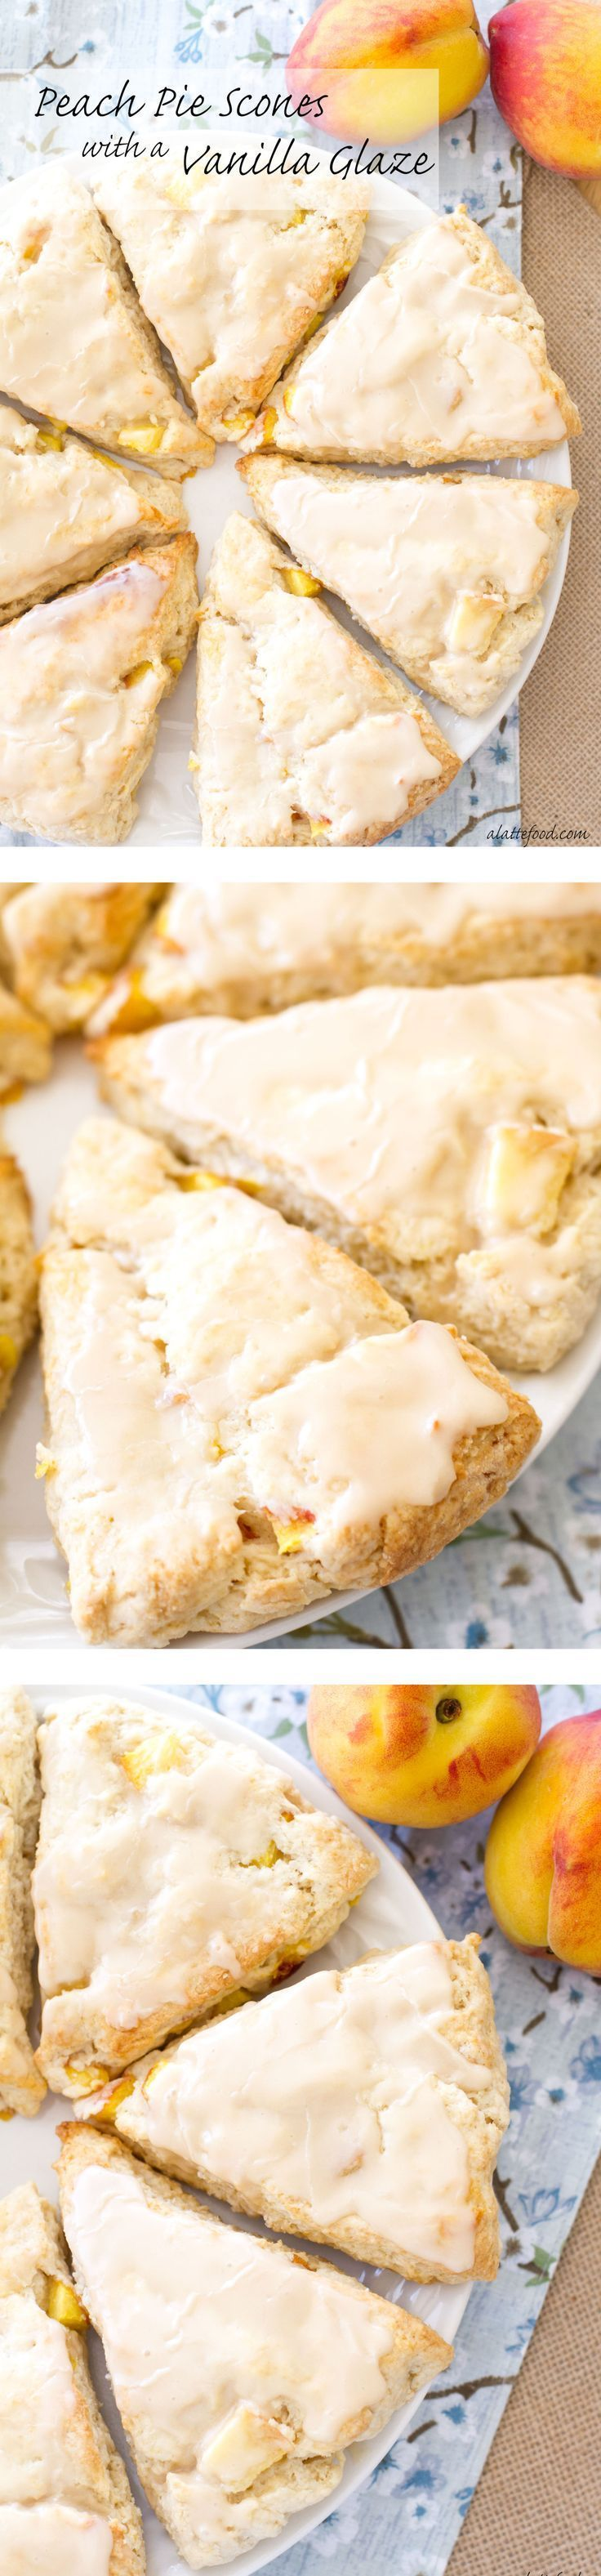 Peach Pie Scones with a Vanilla Glaze: These peaches 'n cream scones taste just like homemade peach pie!